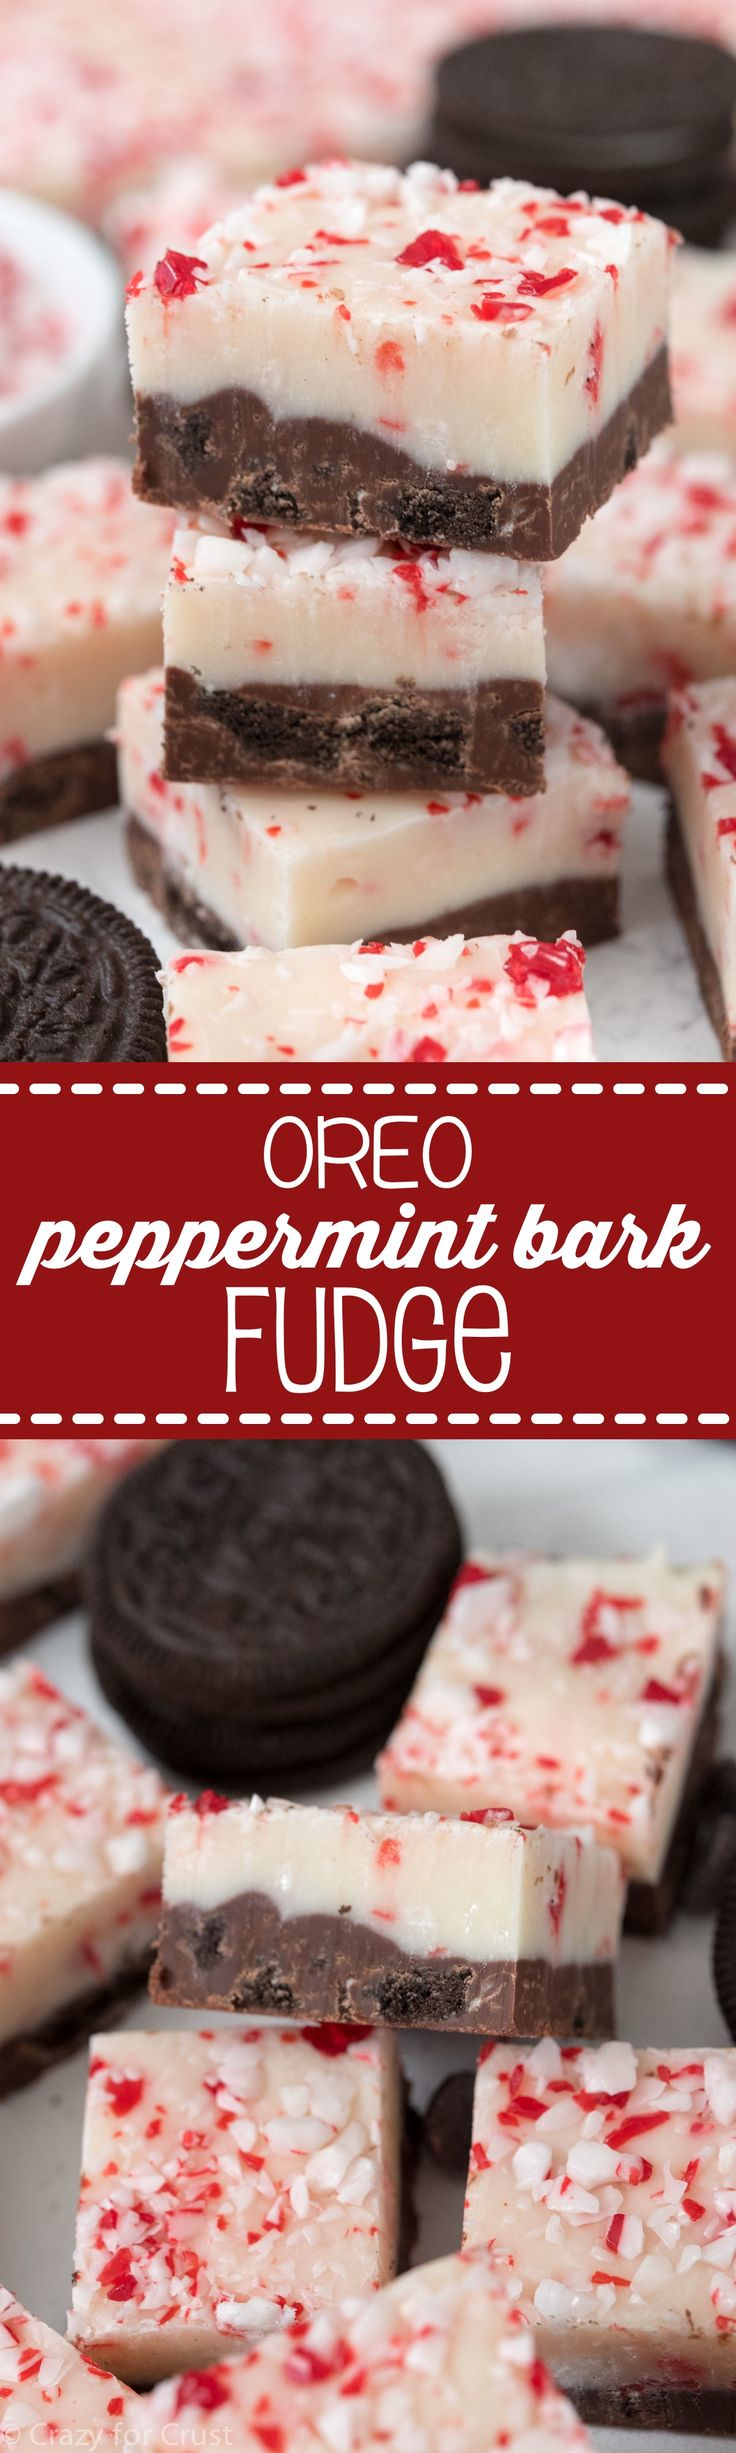 Oreo Peppermint Bark Fudge - this EASY fudge recipe has a chocolate Oreo layer and a white chocolate peppermint layer, just like the bark!